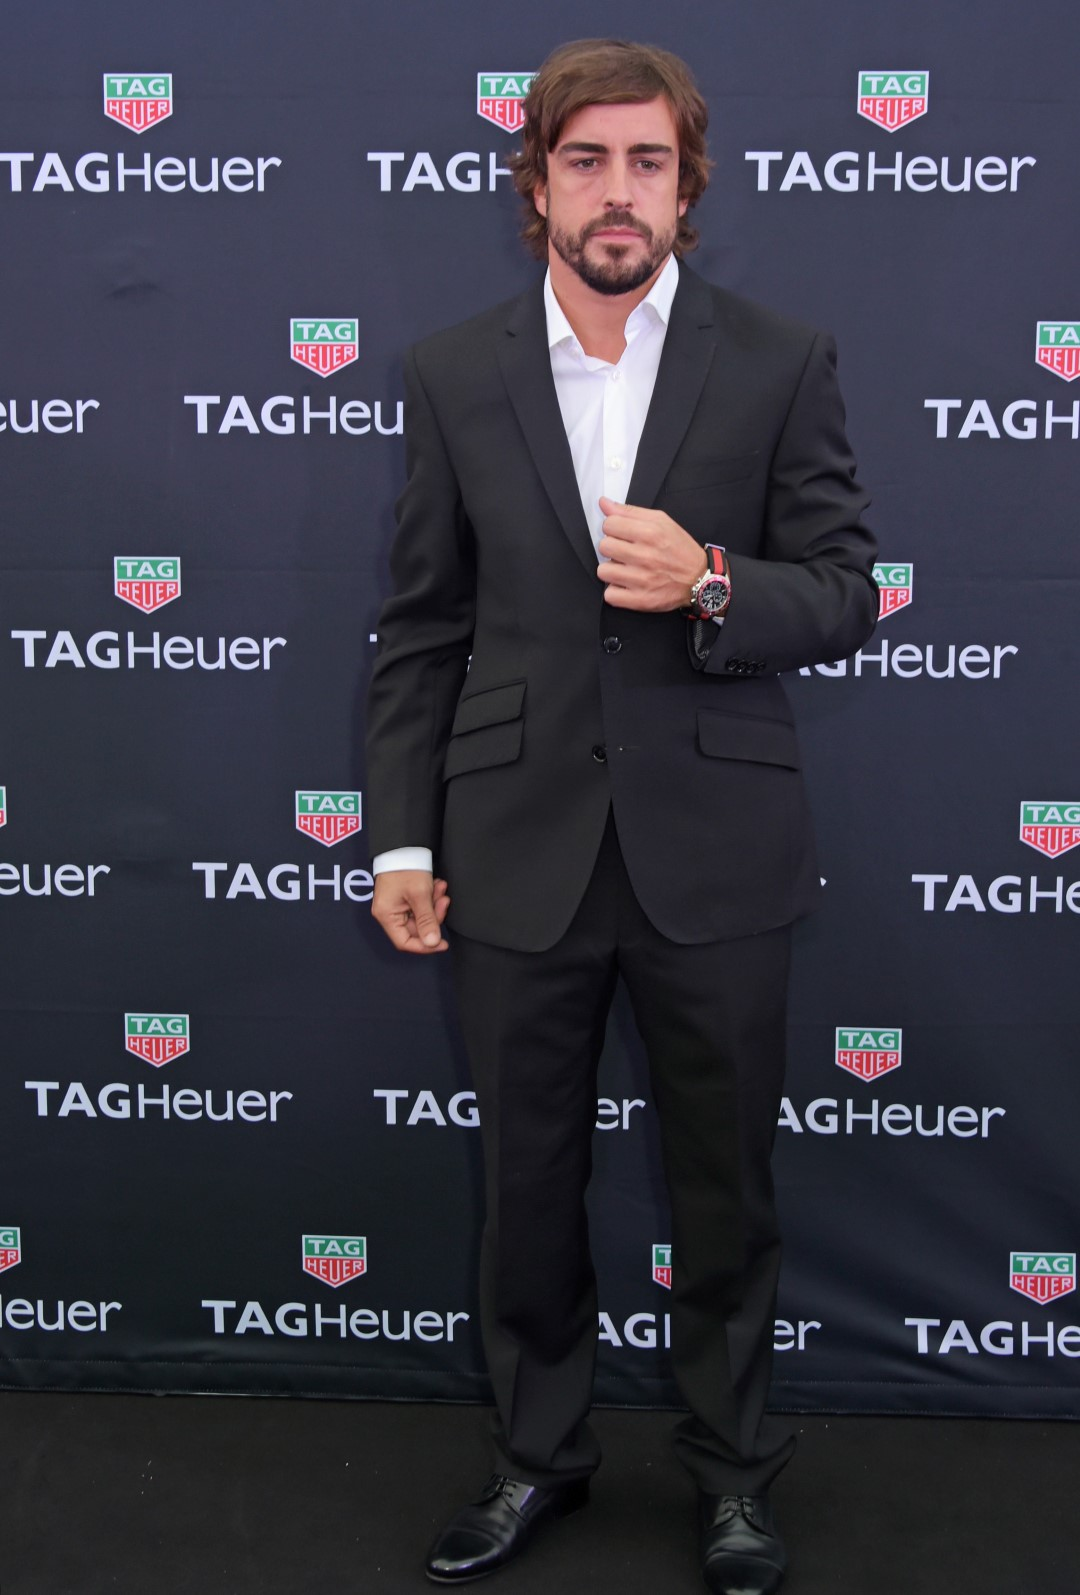 MONACO - MAY 23:  Brand Ambassador Fernando Alonso attends the TAG Heuer Monaco Party on May 23, 2015 in Monaco, Monaco.  (Photo by David M. Benett/Getty Images for TAG Heuer) *** Local Caption *** Fernando Alonso